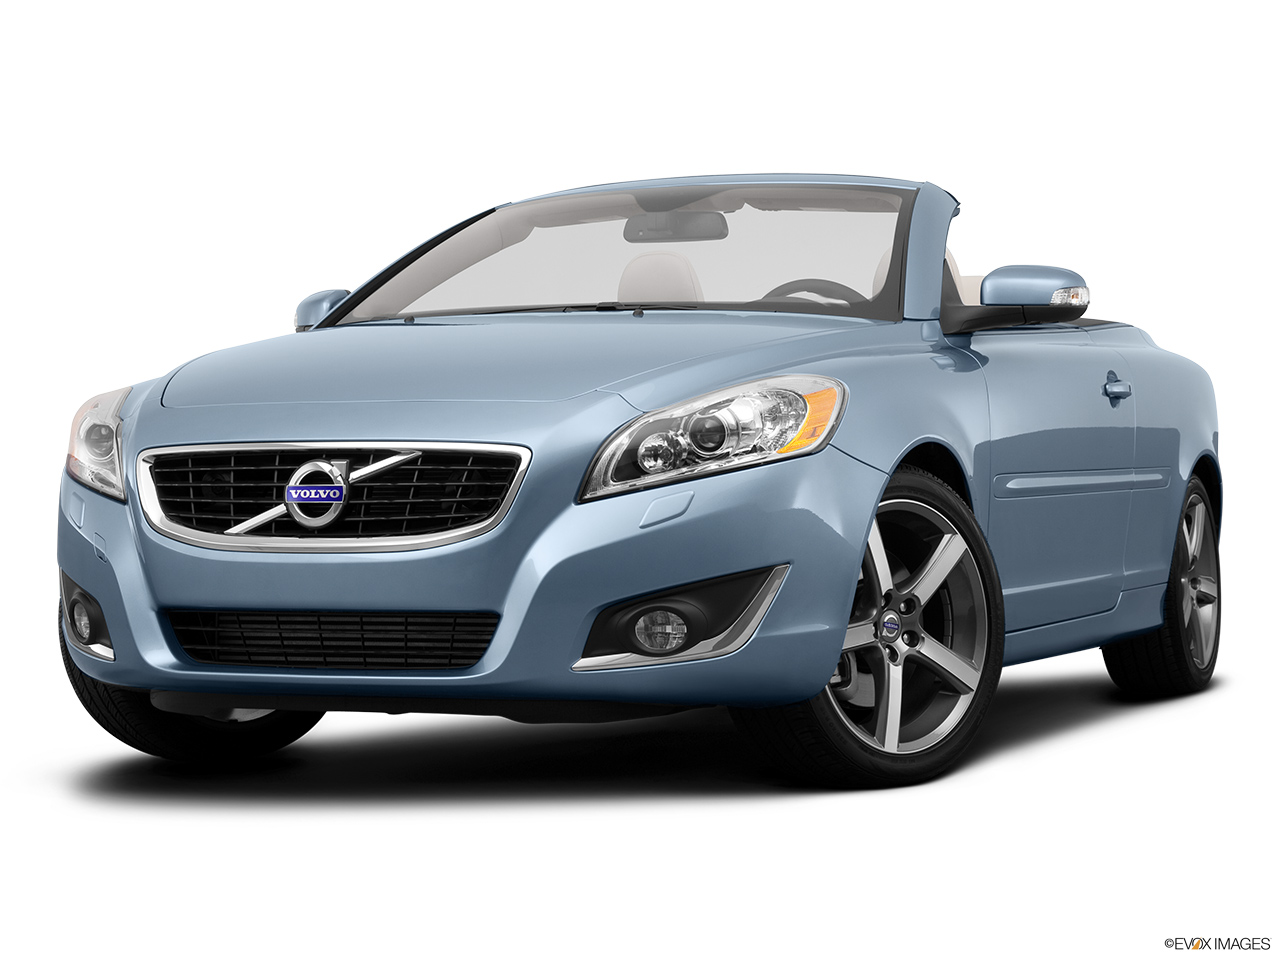 2013 Volvo C70 T5 Platinum Front angle view, low wide perspective.